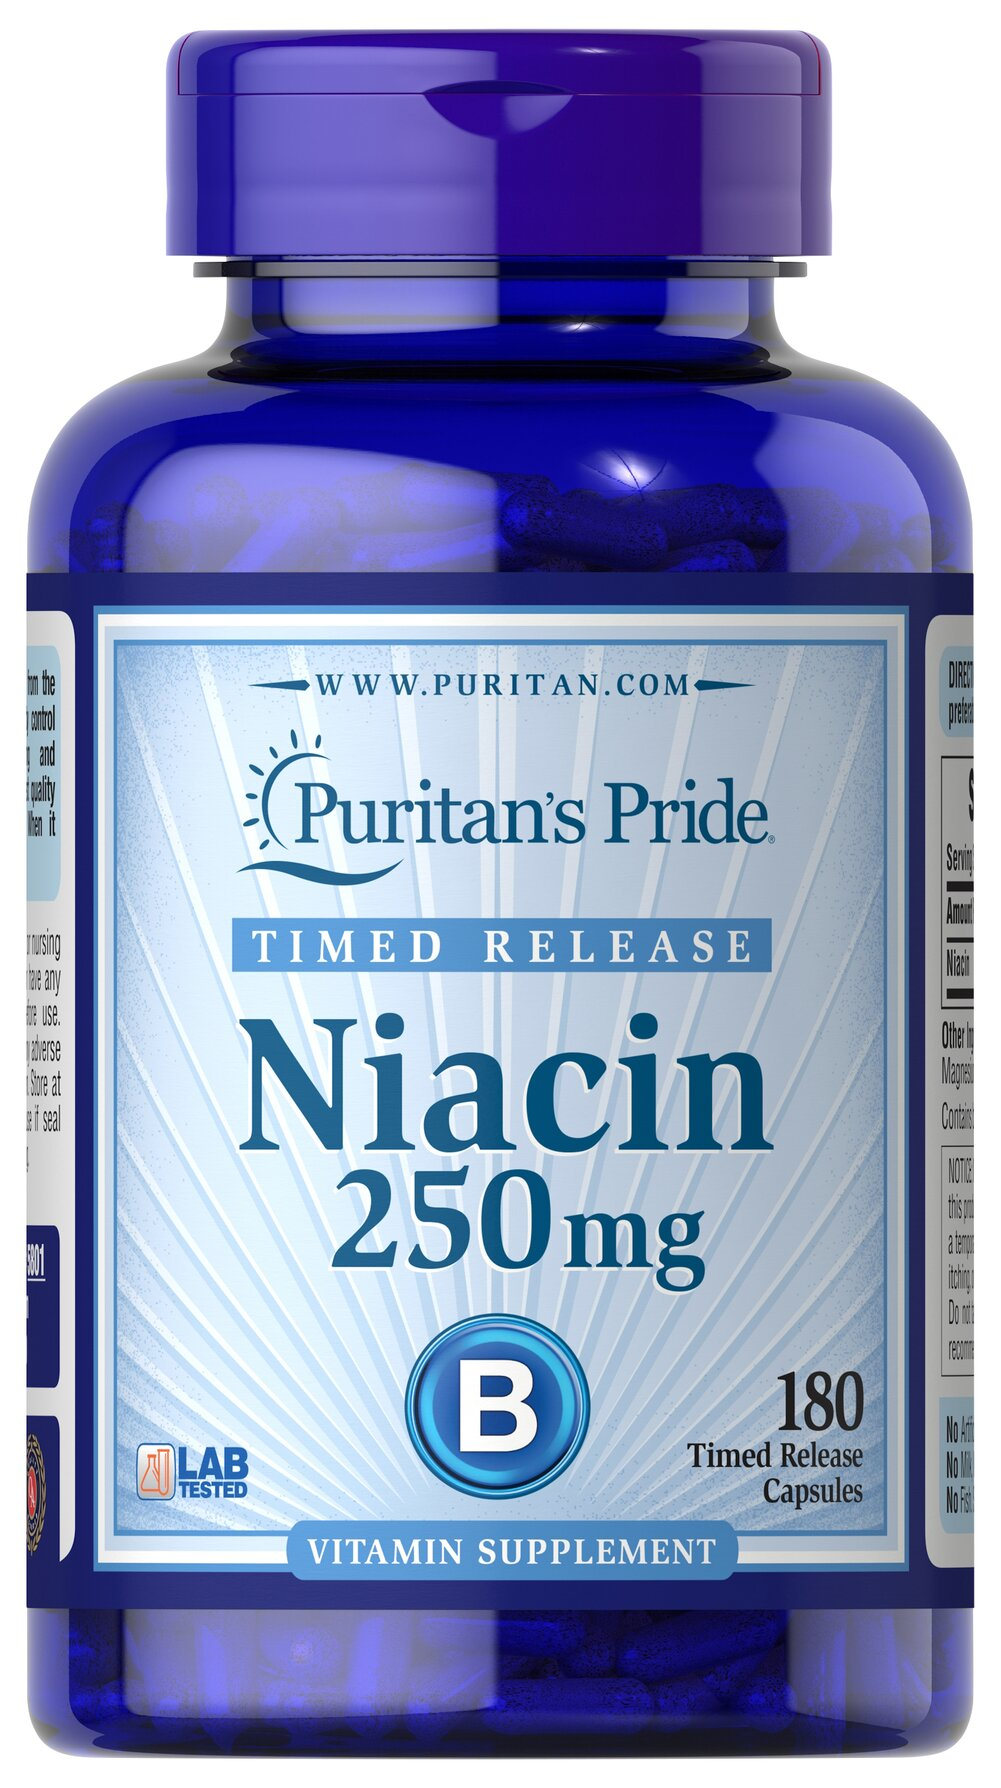 Niacin 250 mg Timed Release <p>Supports Energy Metabolism and Nervous System Health**</p><p>Laboratory Tested</p><p>Niacin is a B-Vitamin, which is part of a coenzyme needed for energy metabolism.** Niacin helps maintain healthy functions of the nervous system and skin.** This product is formulated to release Niacin over a prolonged period of time.</p> 180 Timed Release Capsules 250 mg $18.99